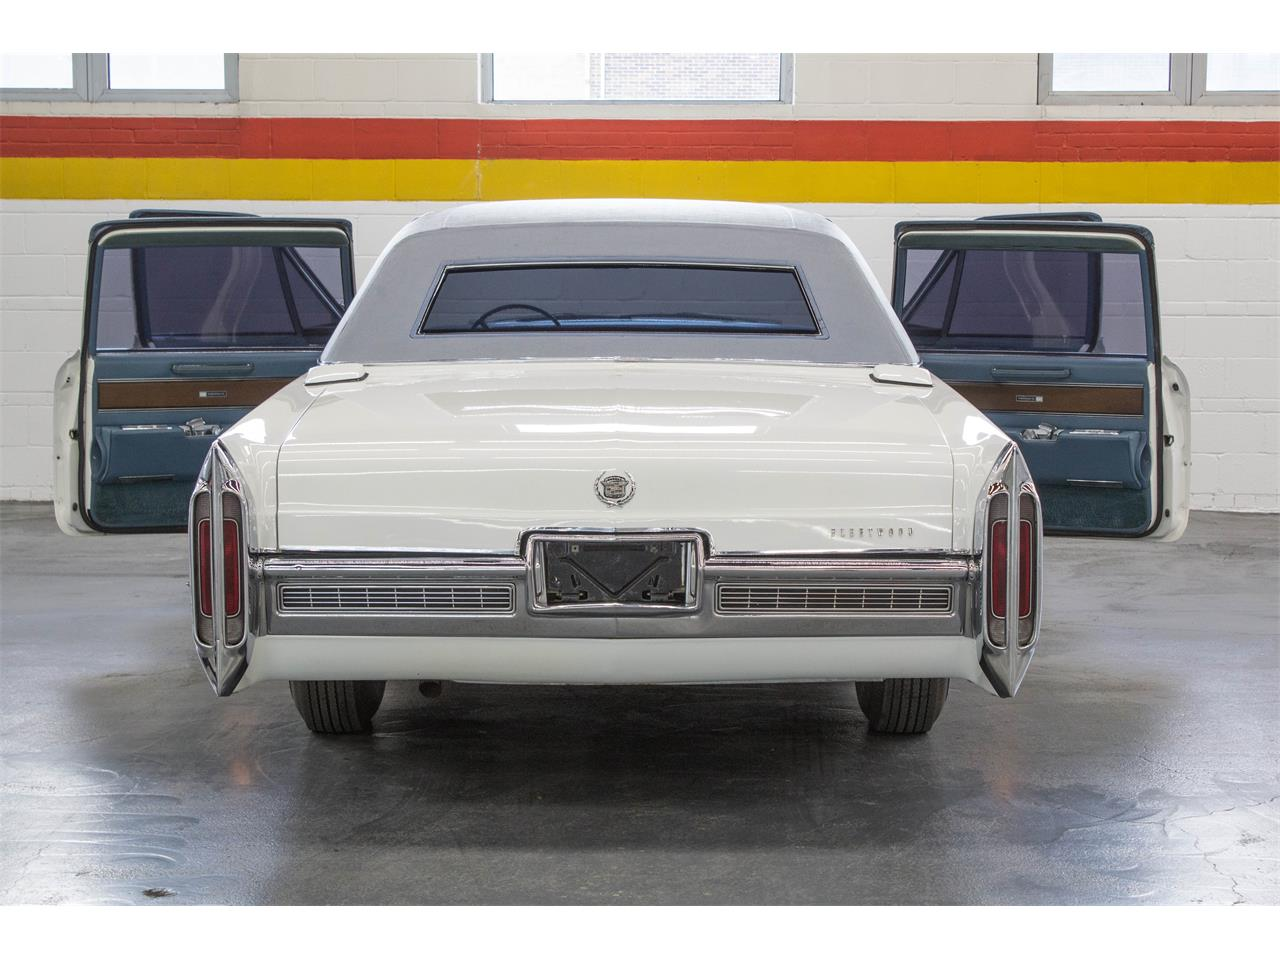 Large Picture of Classic 1966 Cadillac Fleetwood Limousine located in Quebec Offered by John Scotti Classic Cars - NKXQ